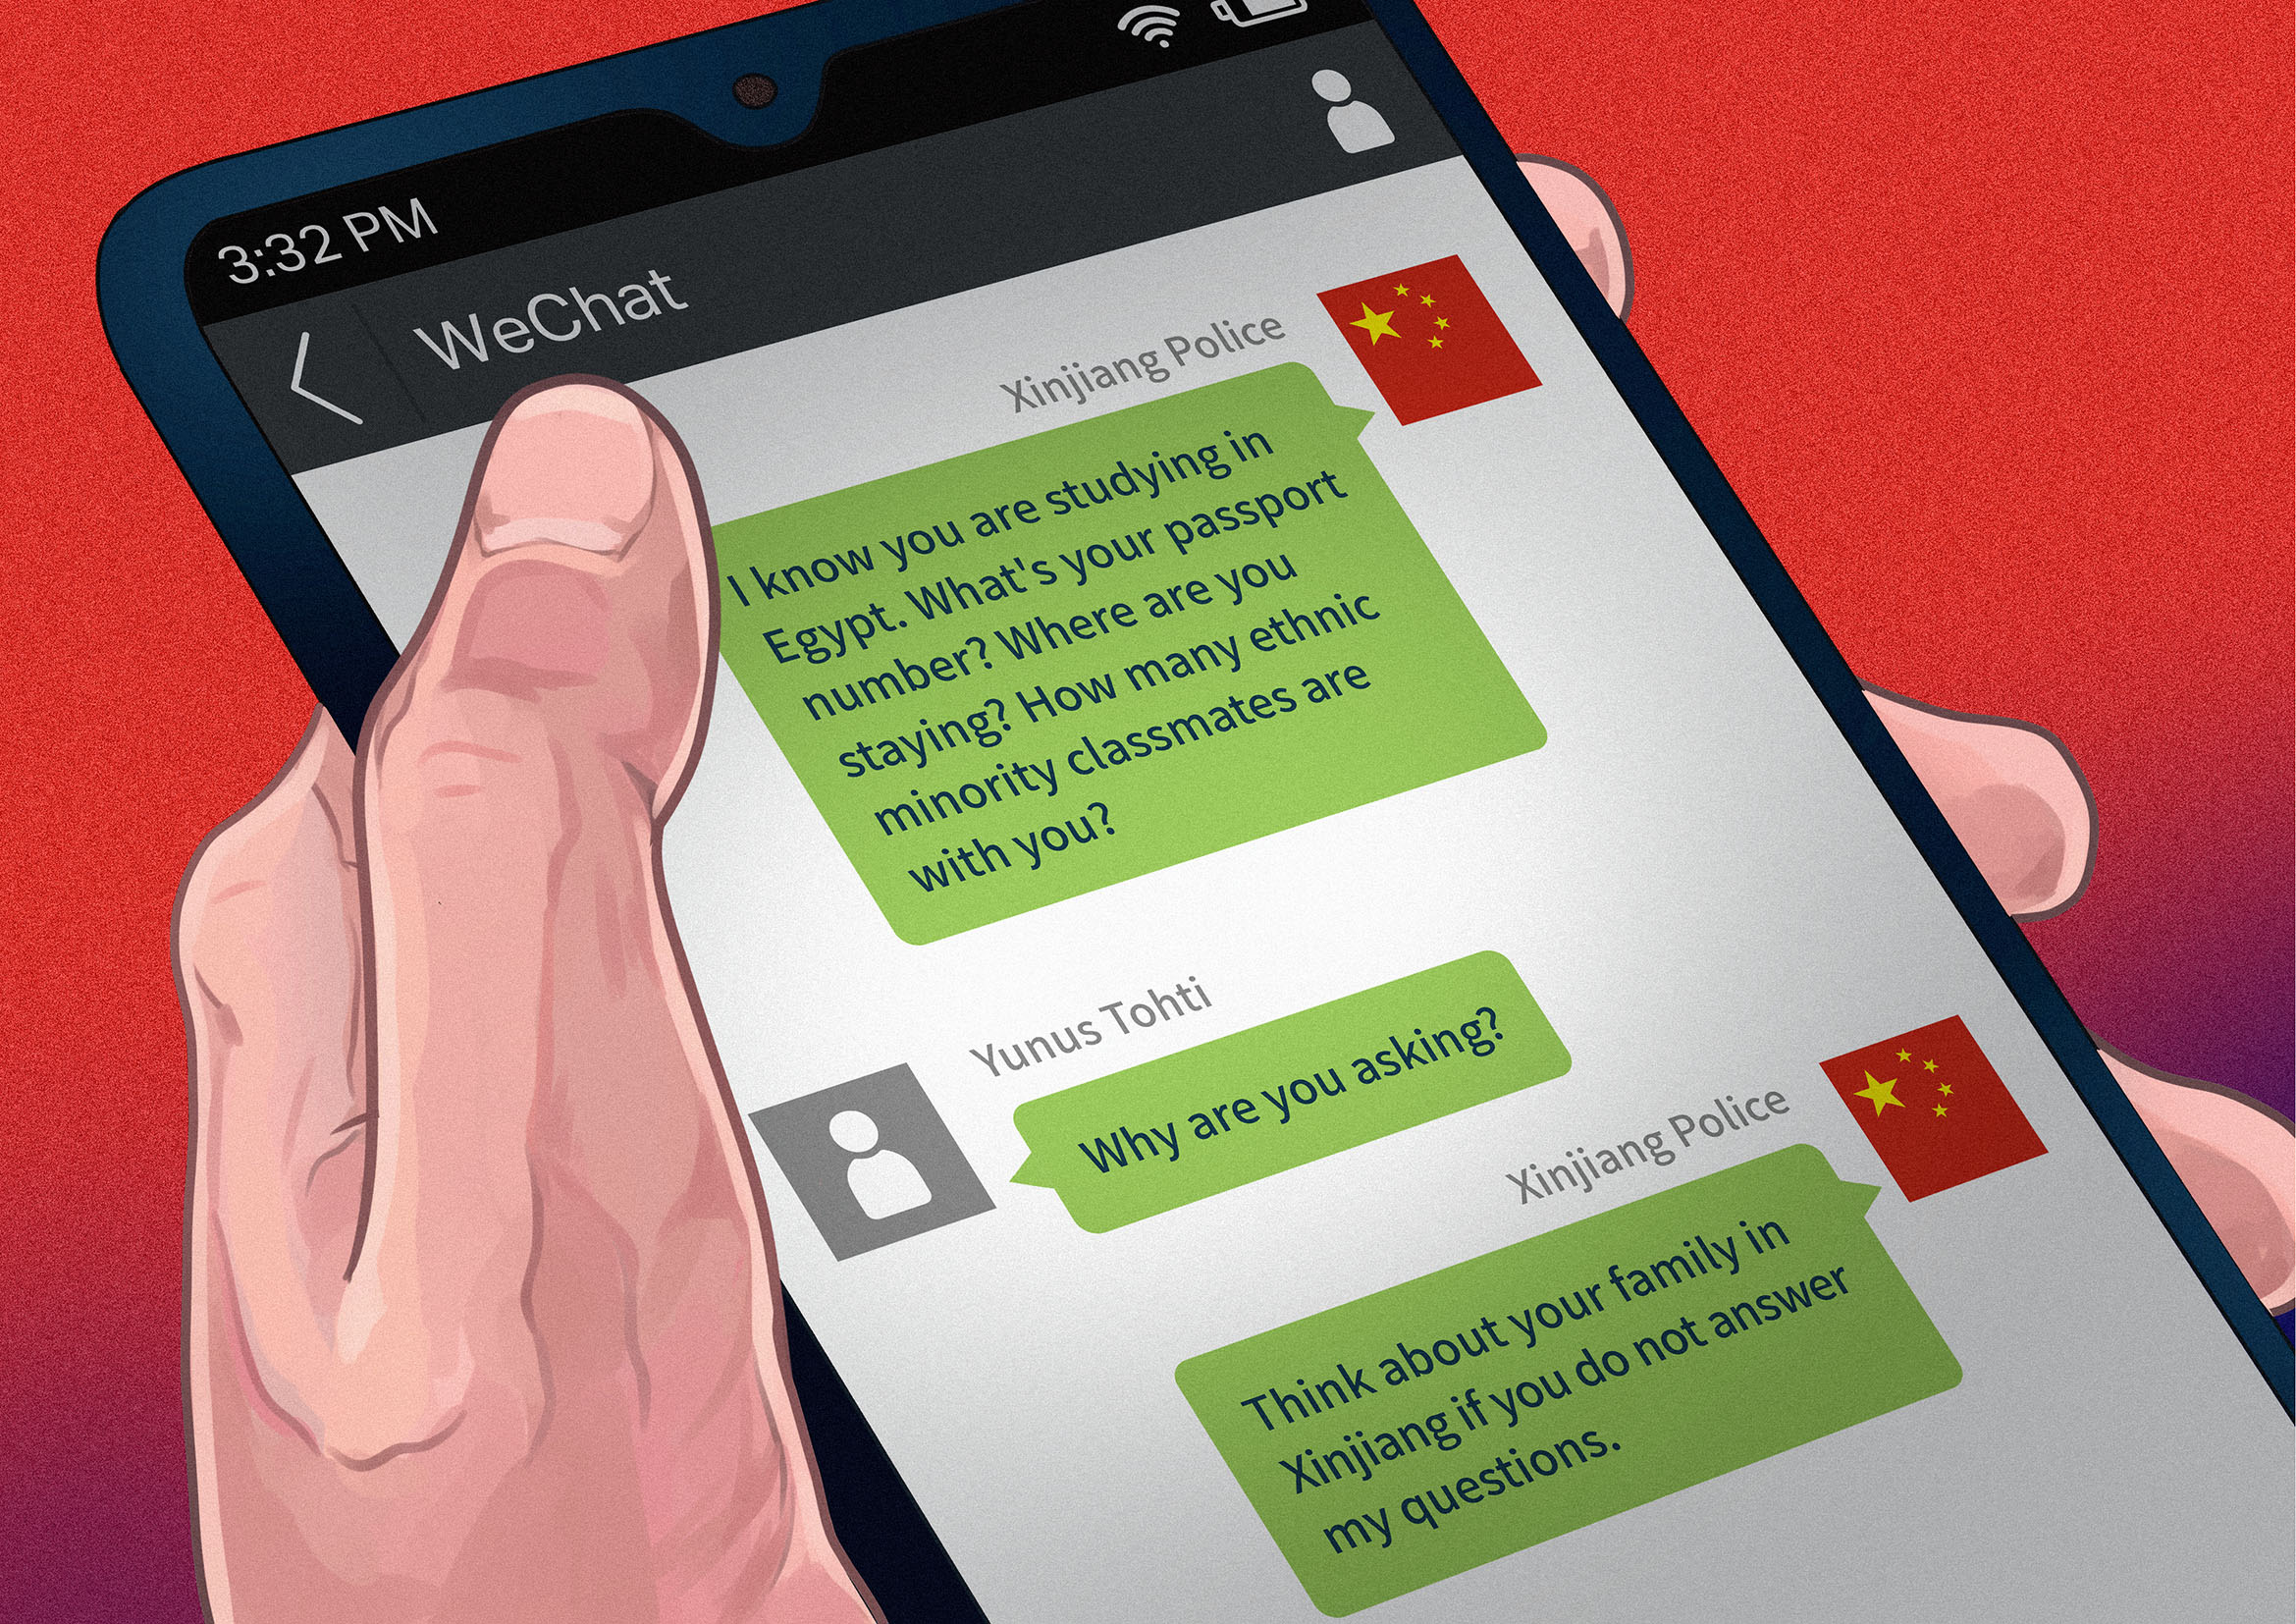 (WeChat messages were simplified based on testimony by Yunus Tohti)